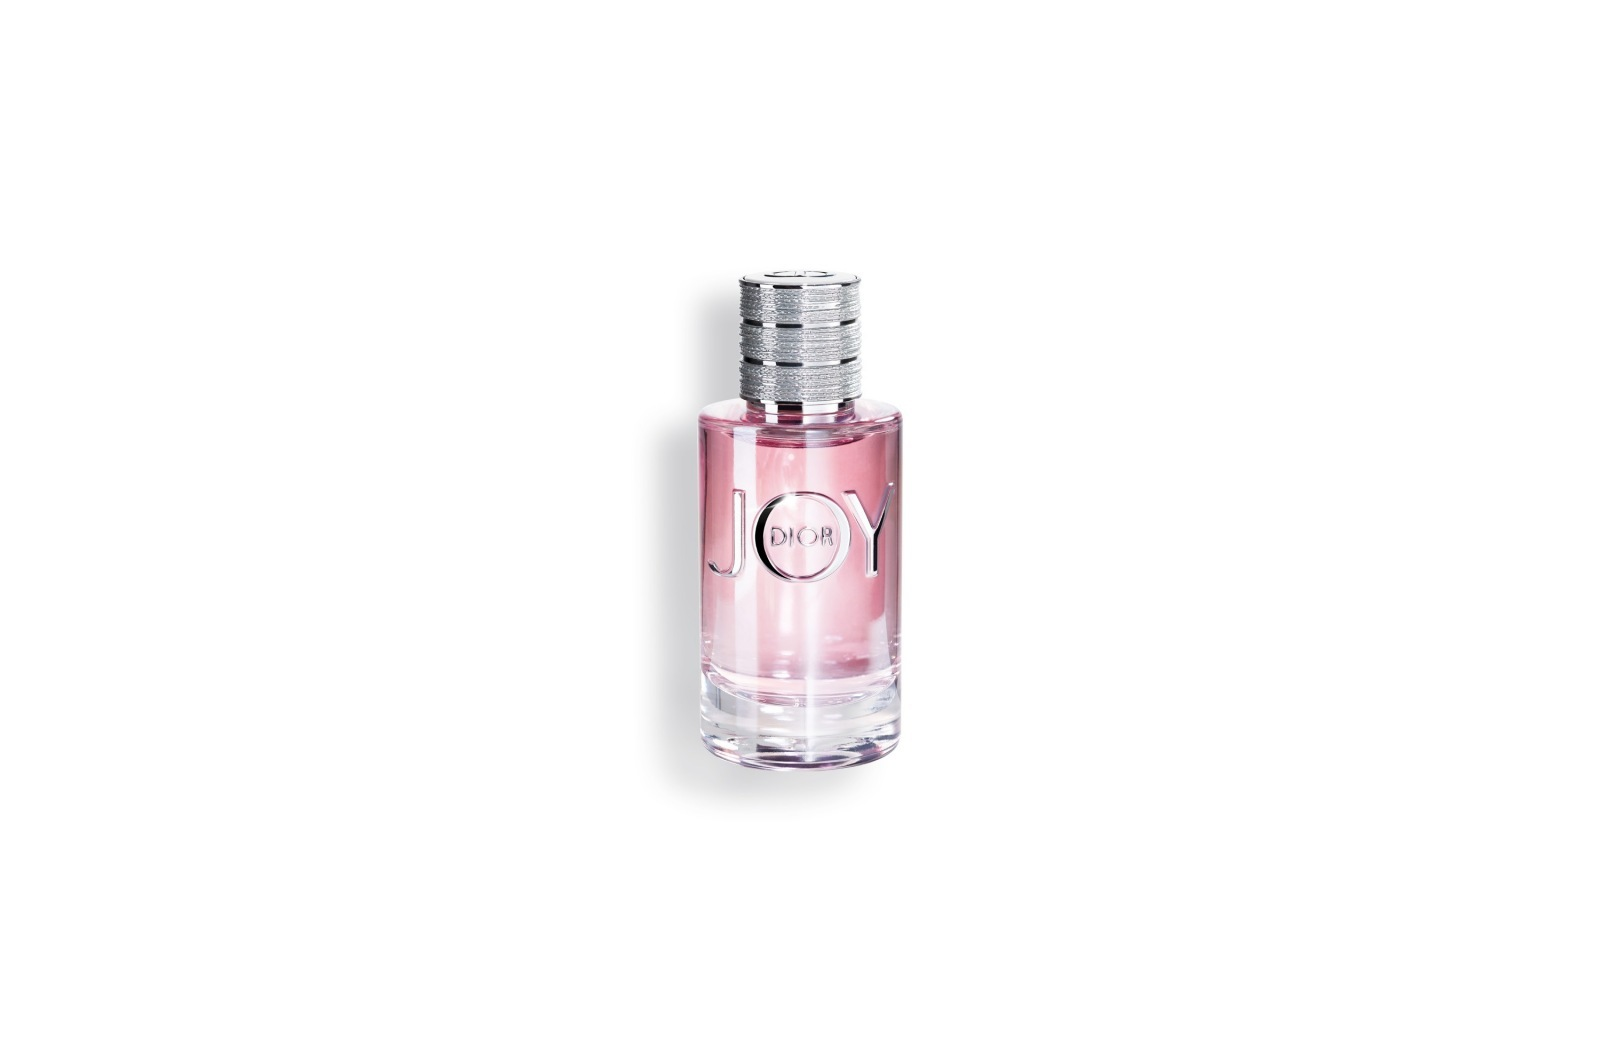 0b3759e29fb Dior Comes with a Novelty Perfume. The Face of JOY is Oscar Winner ...